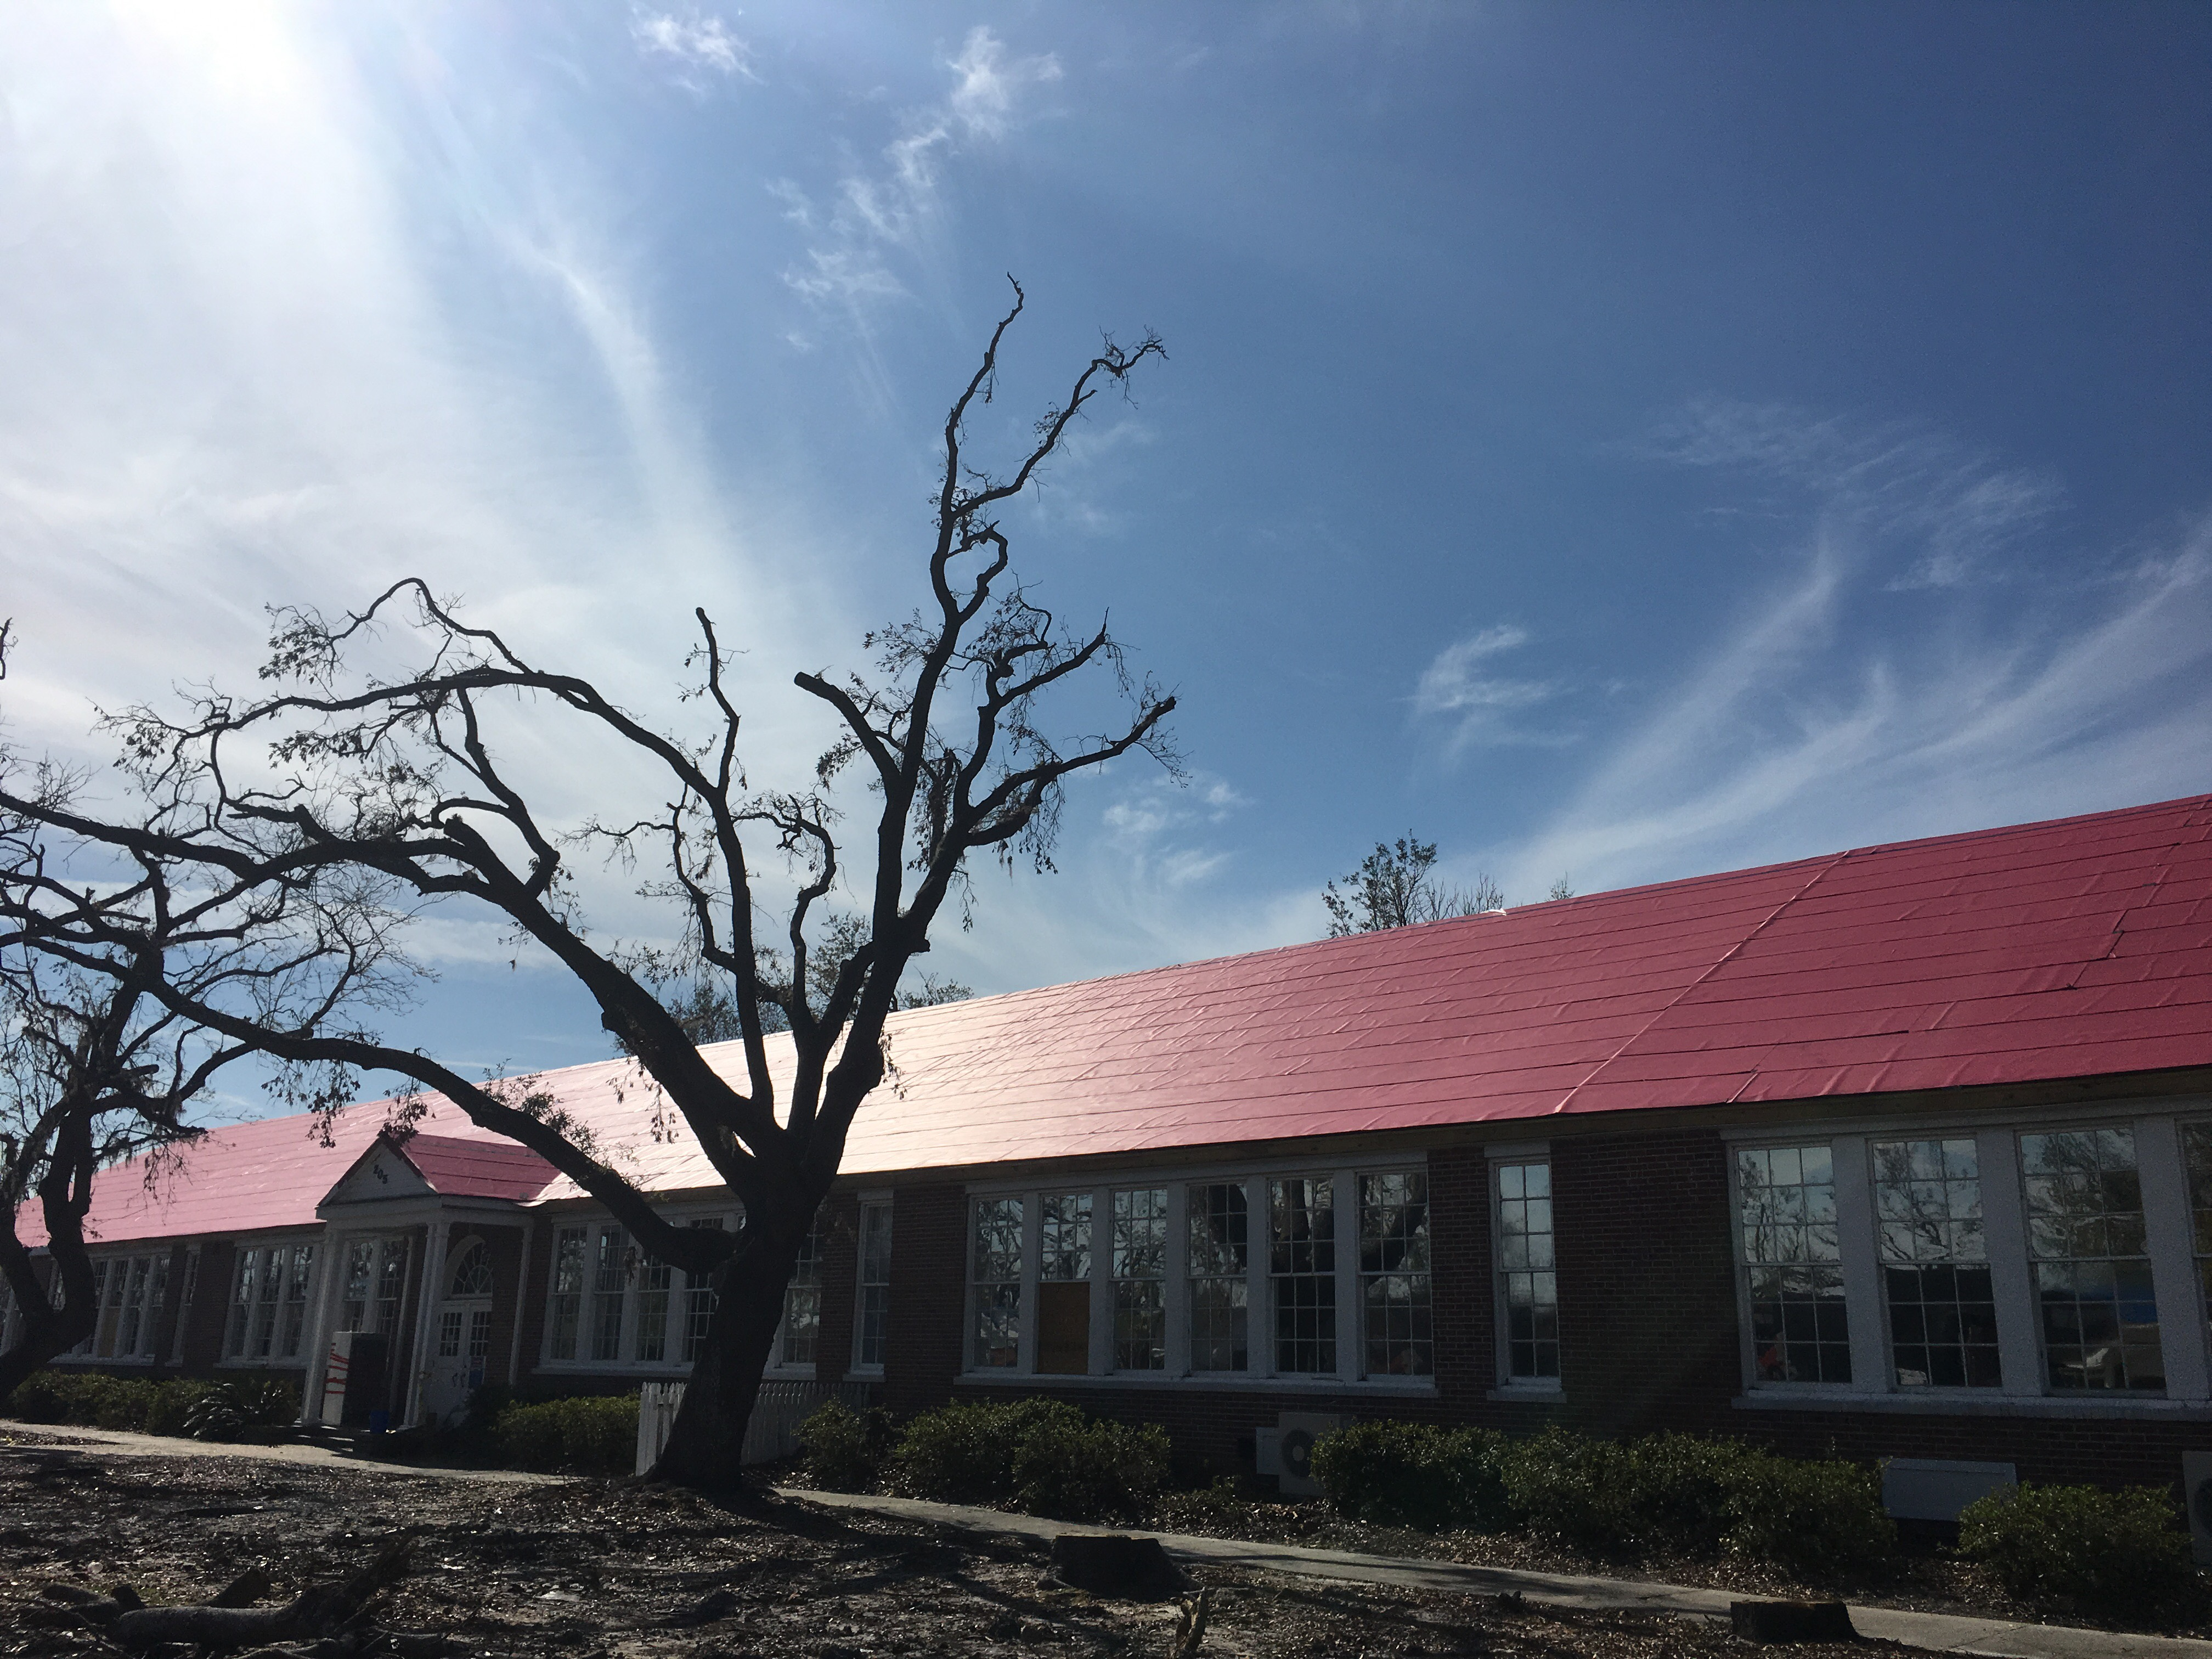 Holy Nativity Episcopal School after Hurricane Michael